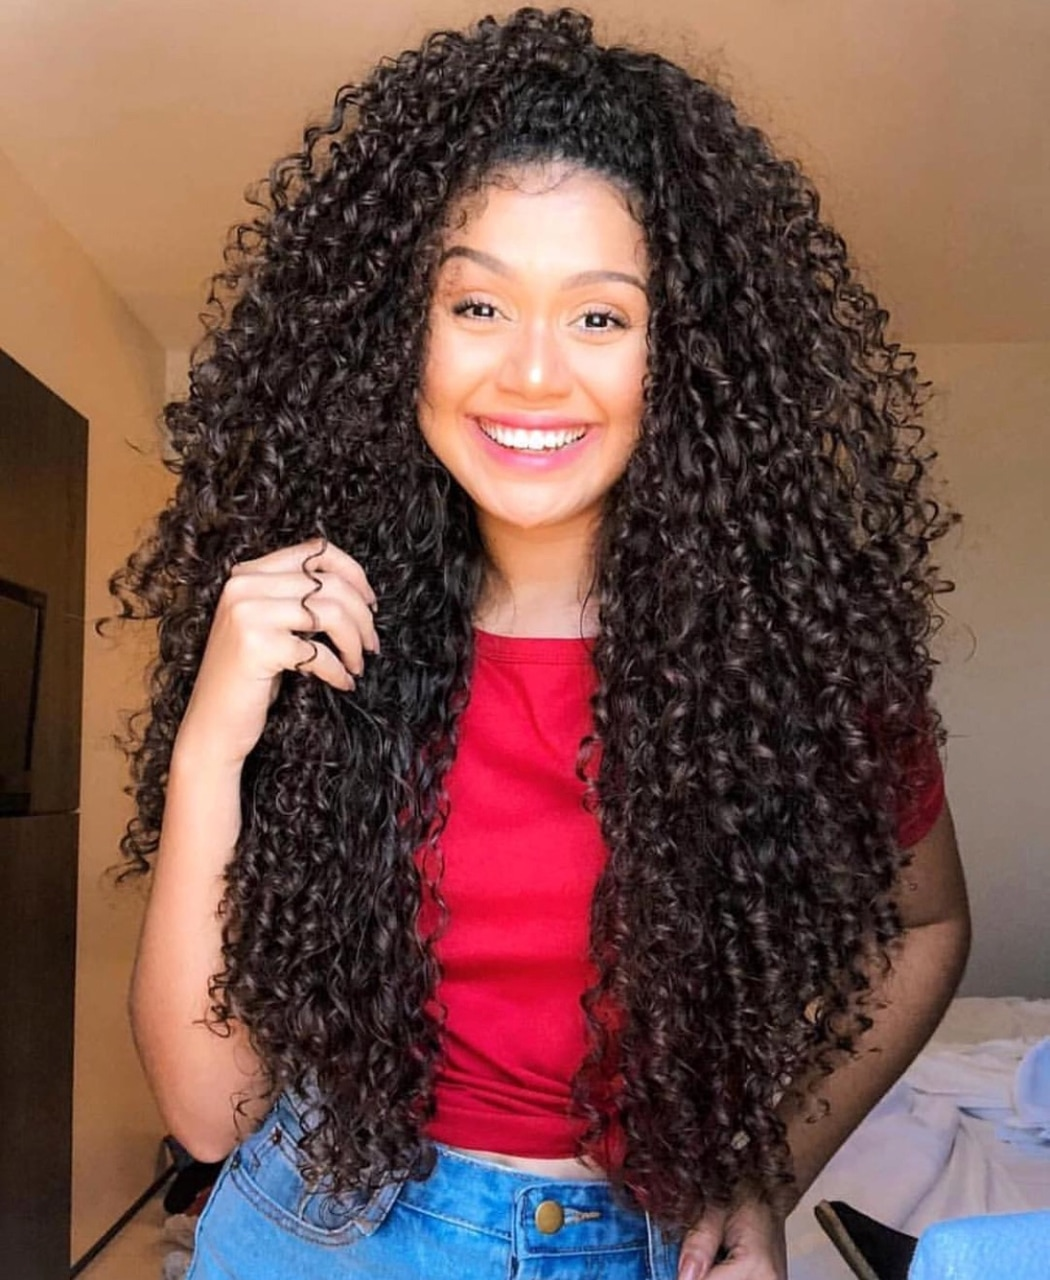 Baddie Instagram Curly Hair And Hot Image 6066160 On Favim Com